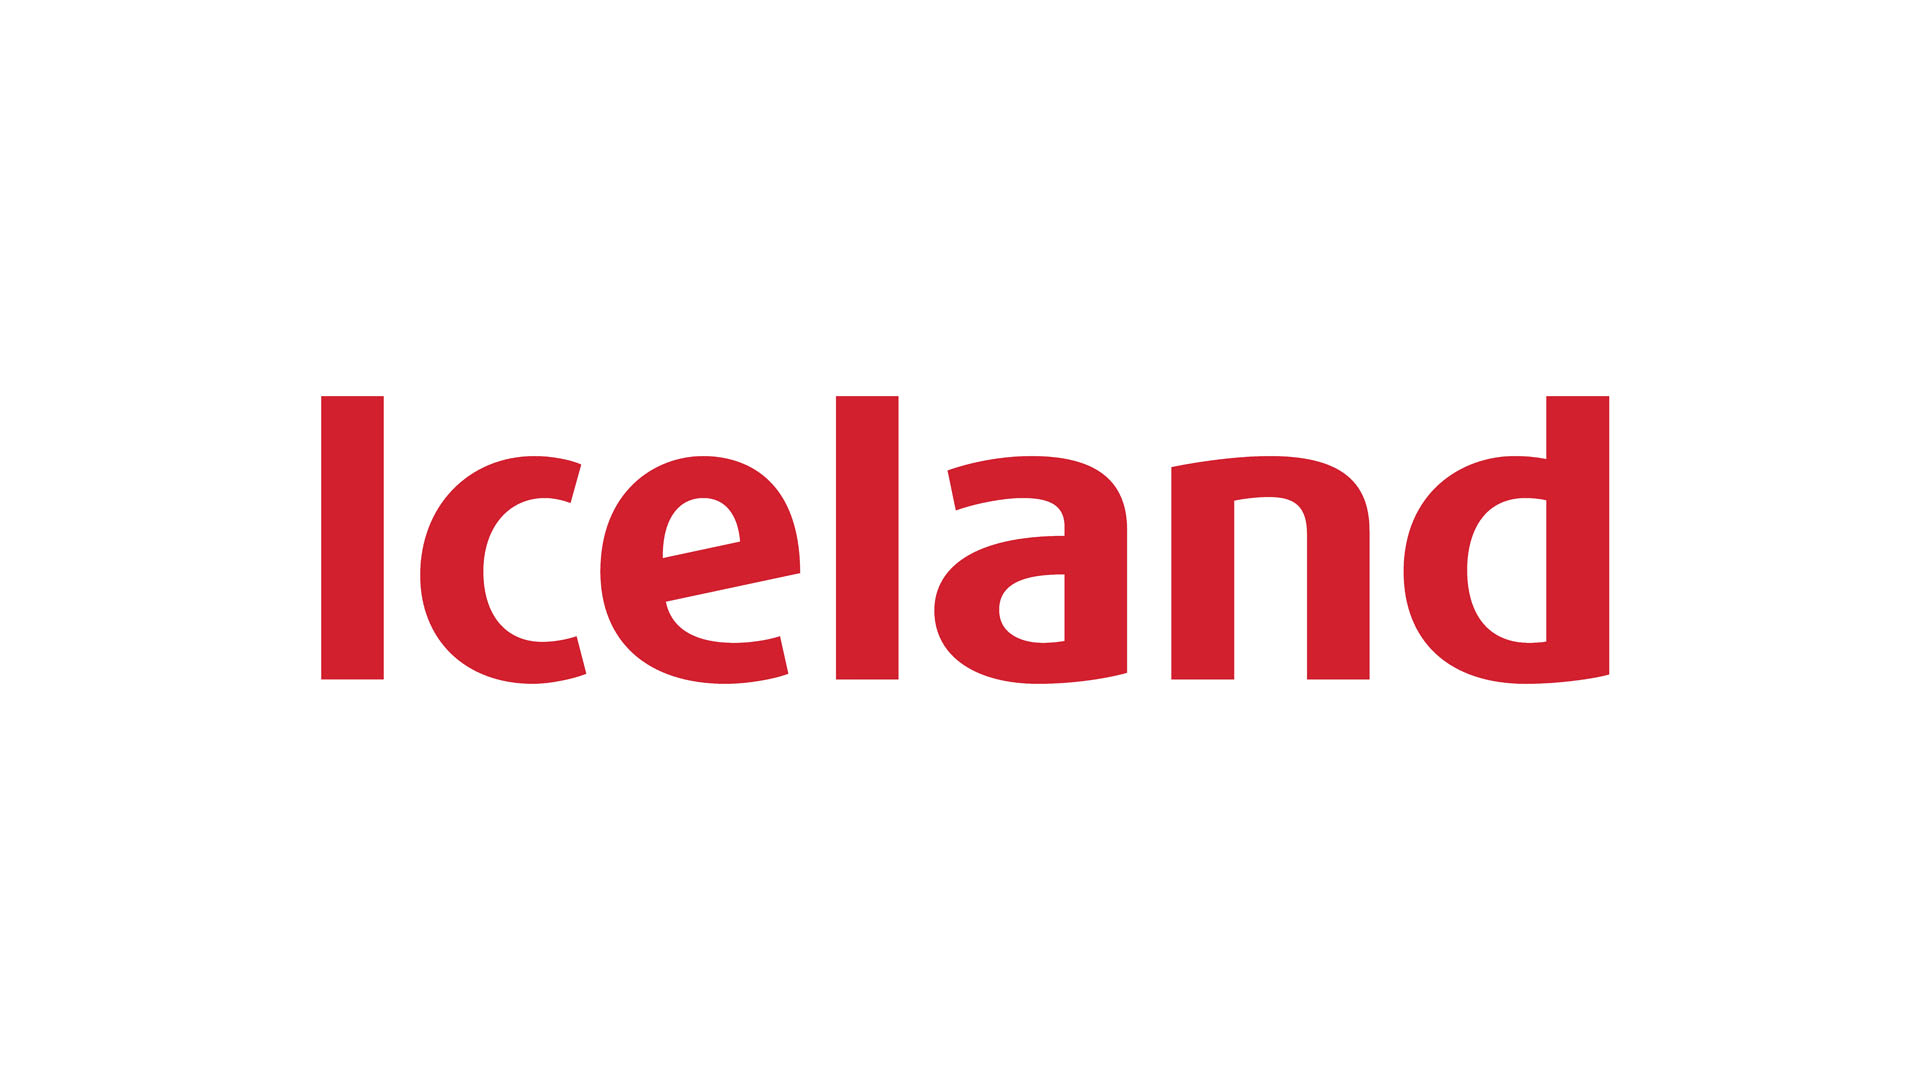 Shop online at Iceland Groceries and explore award winning products and convenient delivery slots. Free Next Day Delivery on orders over £35.